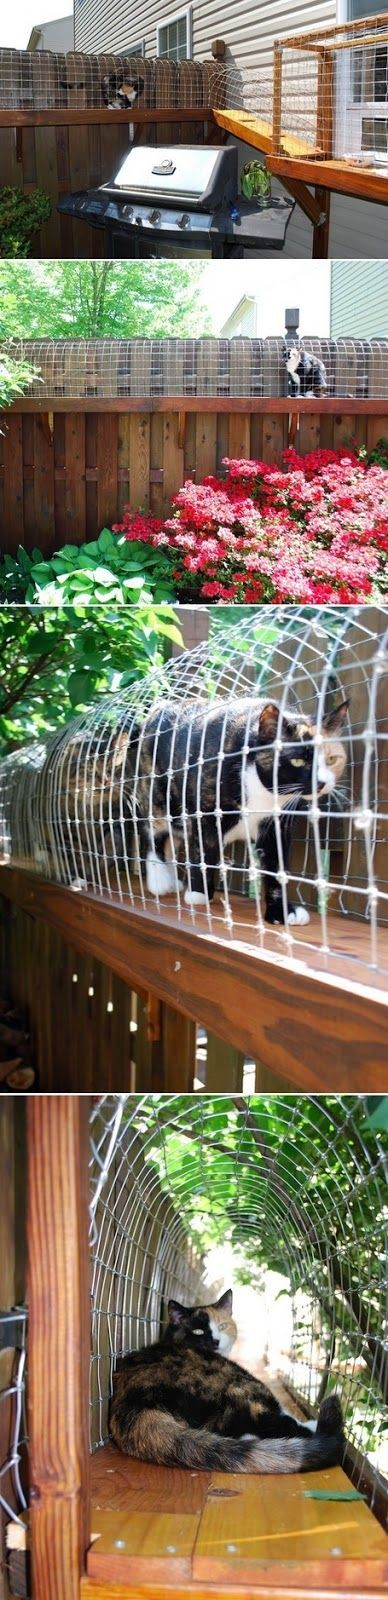 The 25 best ideas about outdoor cat run on pinterest for Having an indoor cat